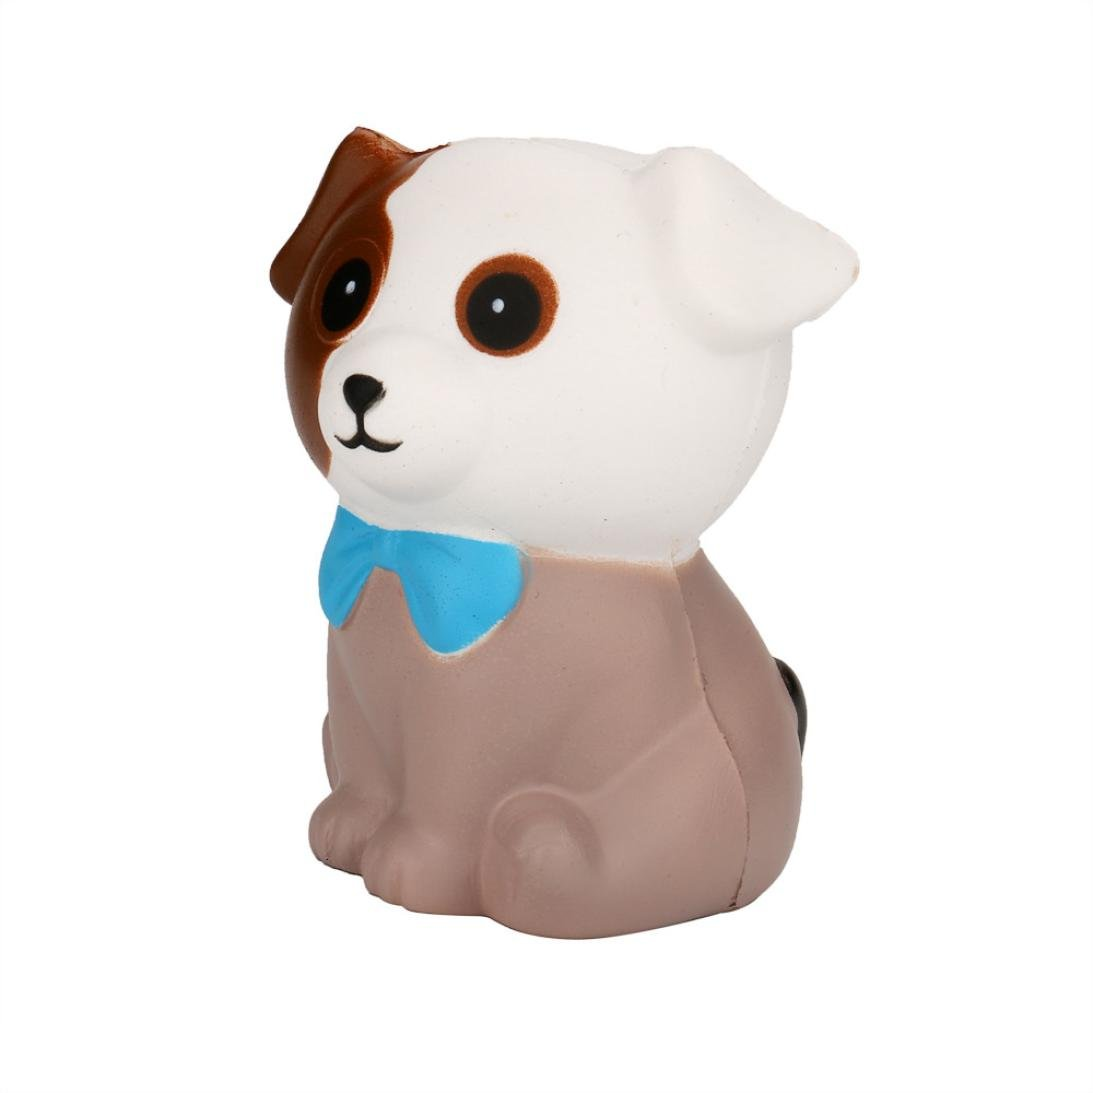 TrimakeShop Squeeze Spotted Dog Cream Bread Scented Slow Rising Toys Phone Charm Gifts